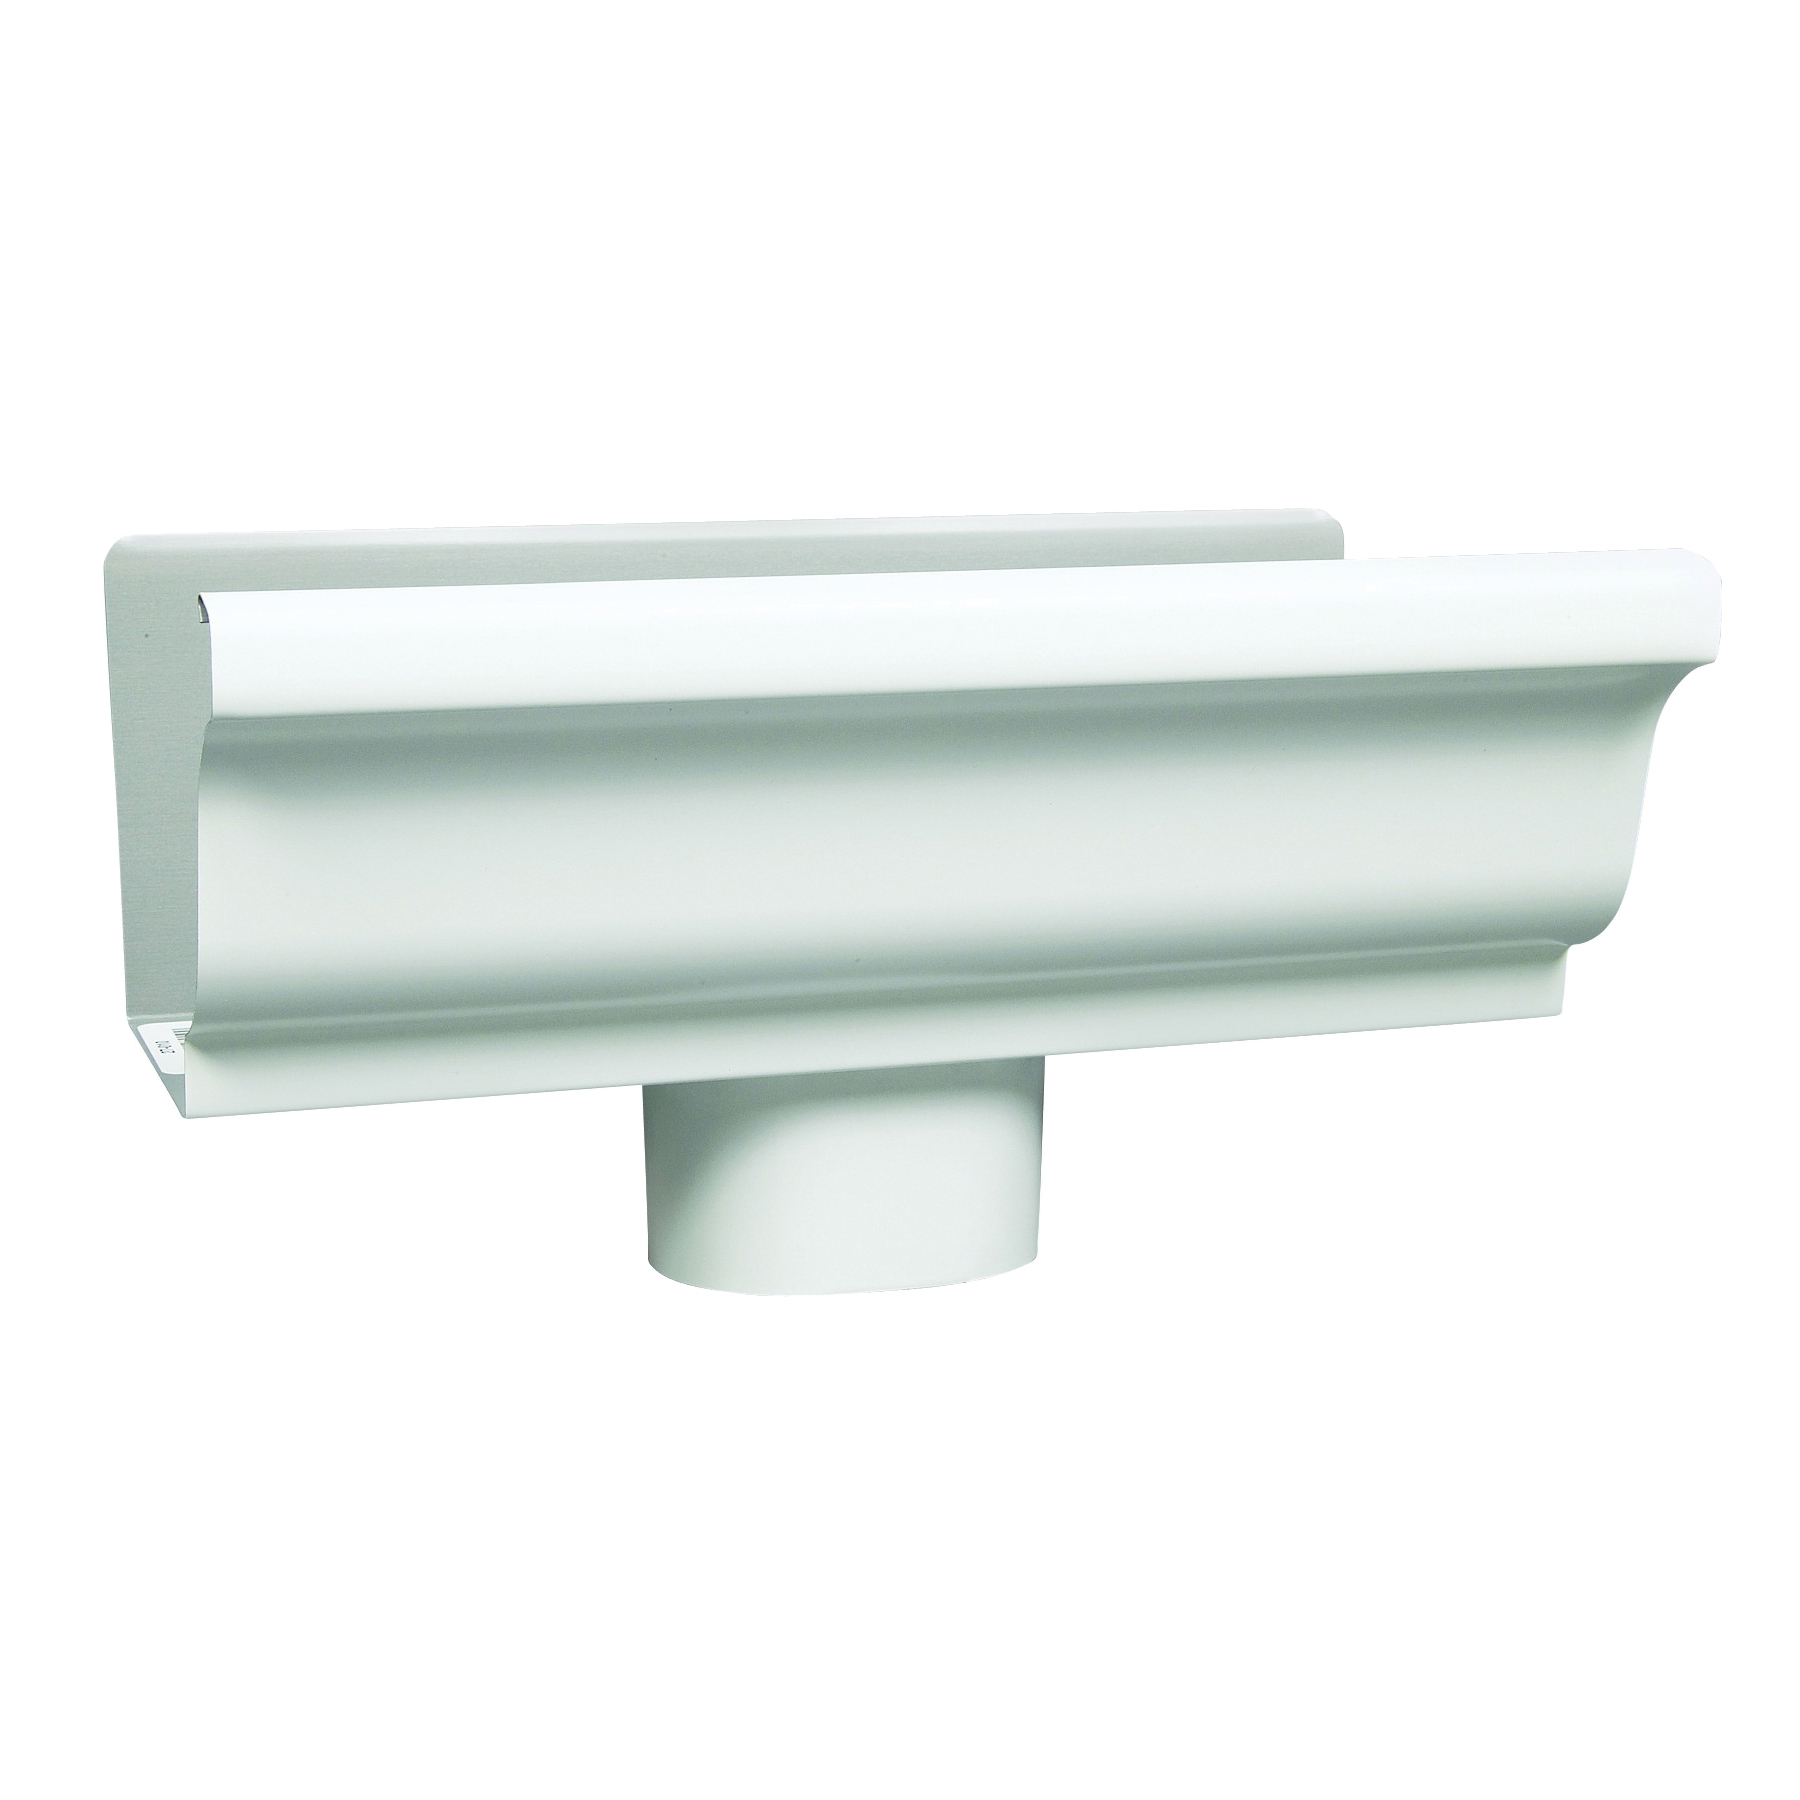 Picture of Amerimax 27010 Gutter End with Drop, 2 in W, Aluminum, White, For: 5 in K-Style Gutter System